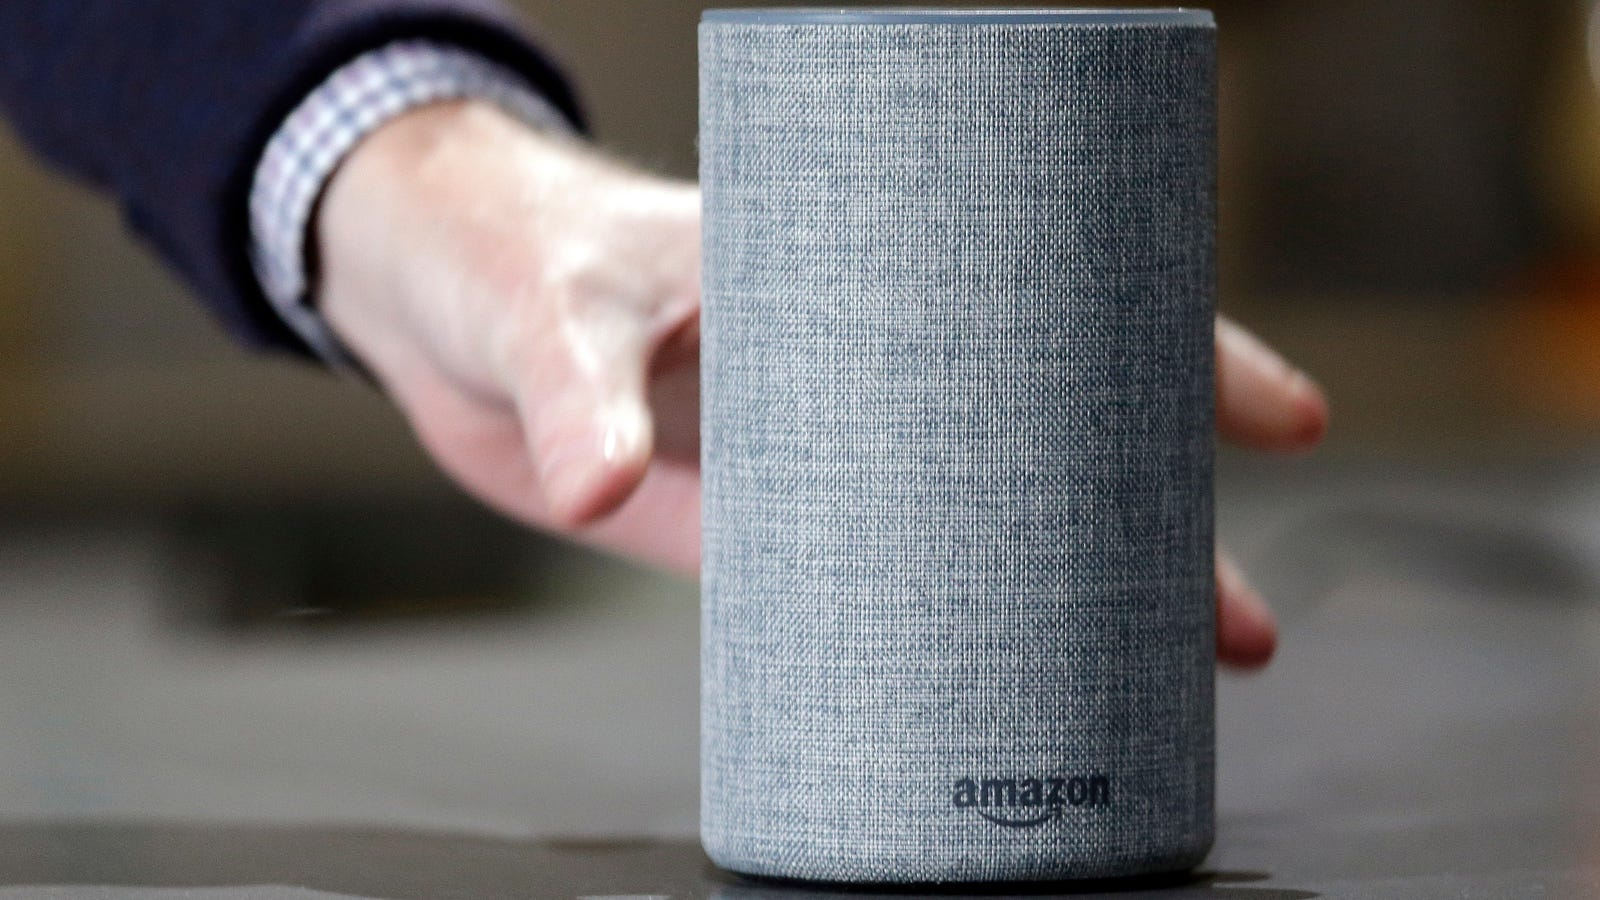 Lawsuits Claim Amazon's Alexa Voice Assistant Illegally Records Children Without Consent - Gizmodo